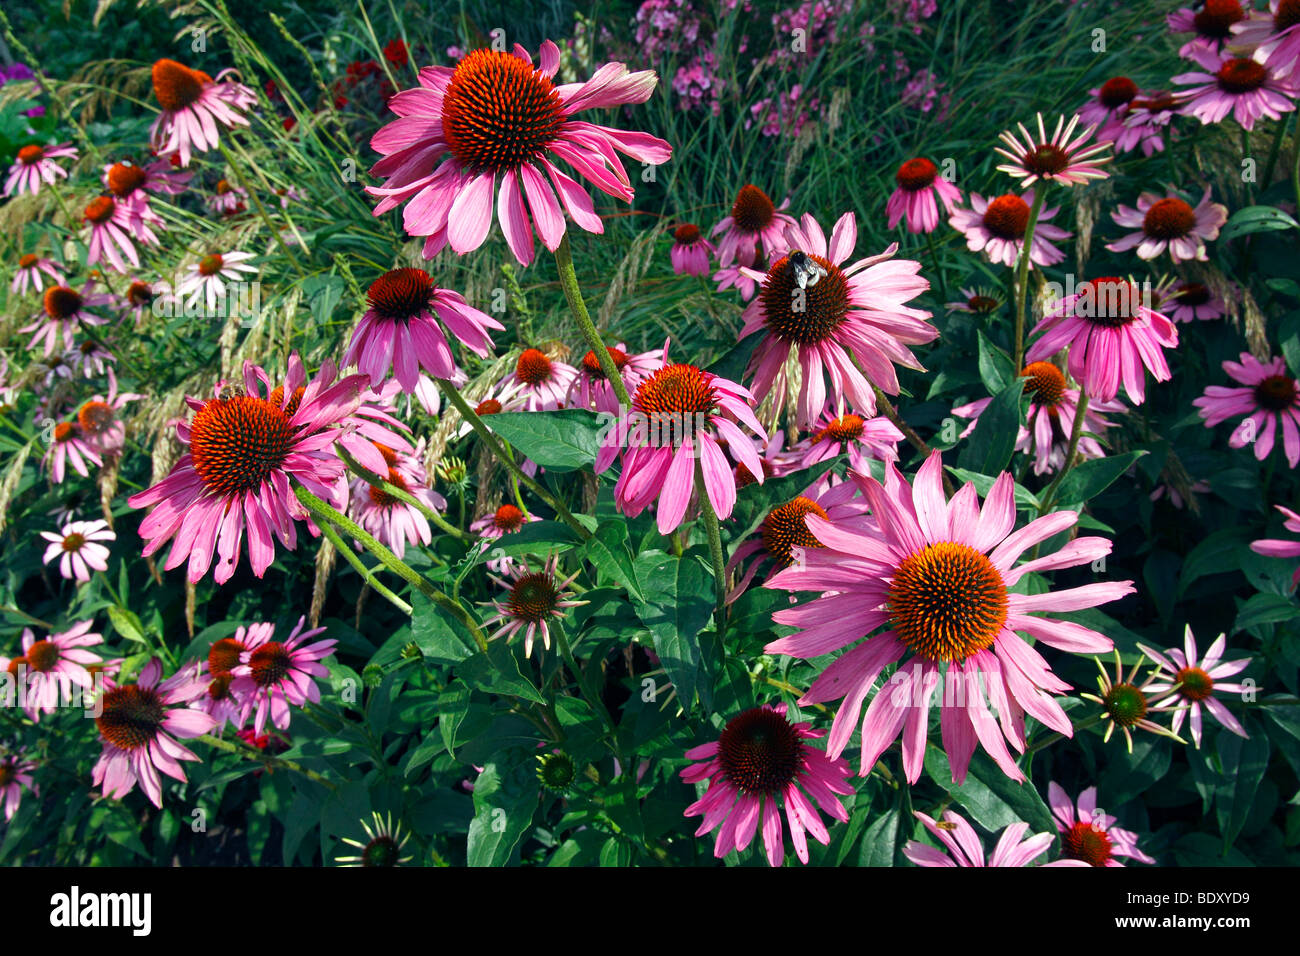 Flowering Purple Cone Flower (Echinacea purpurea), medical plant - Stock Image